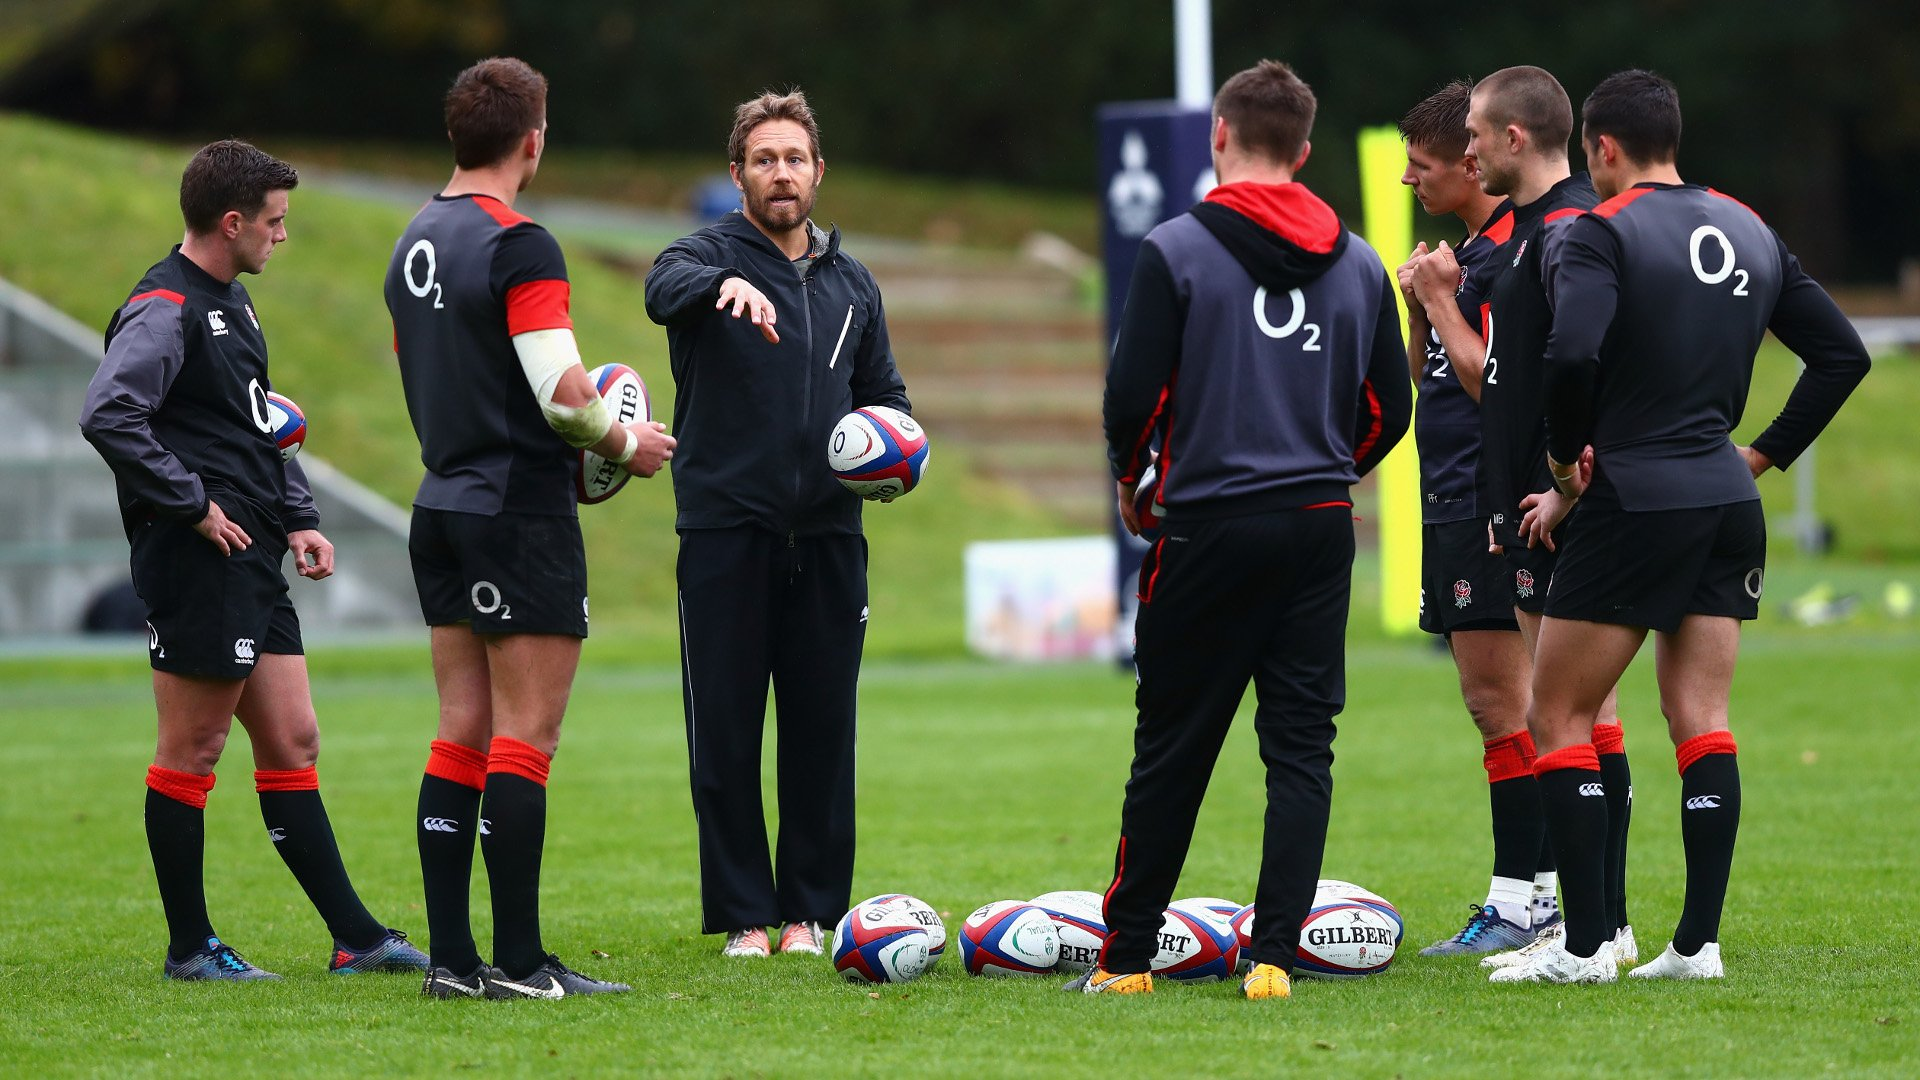 Five coaches who could solve England's attacking woes